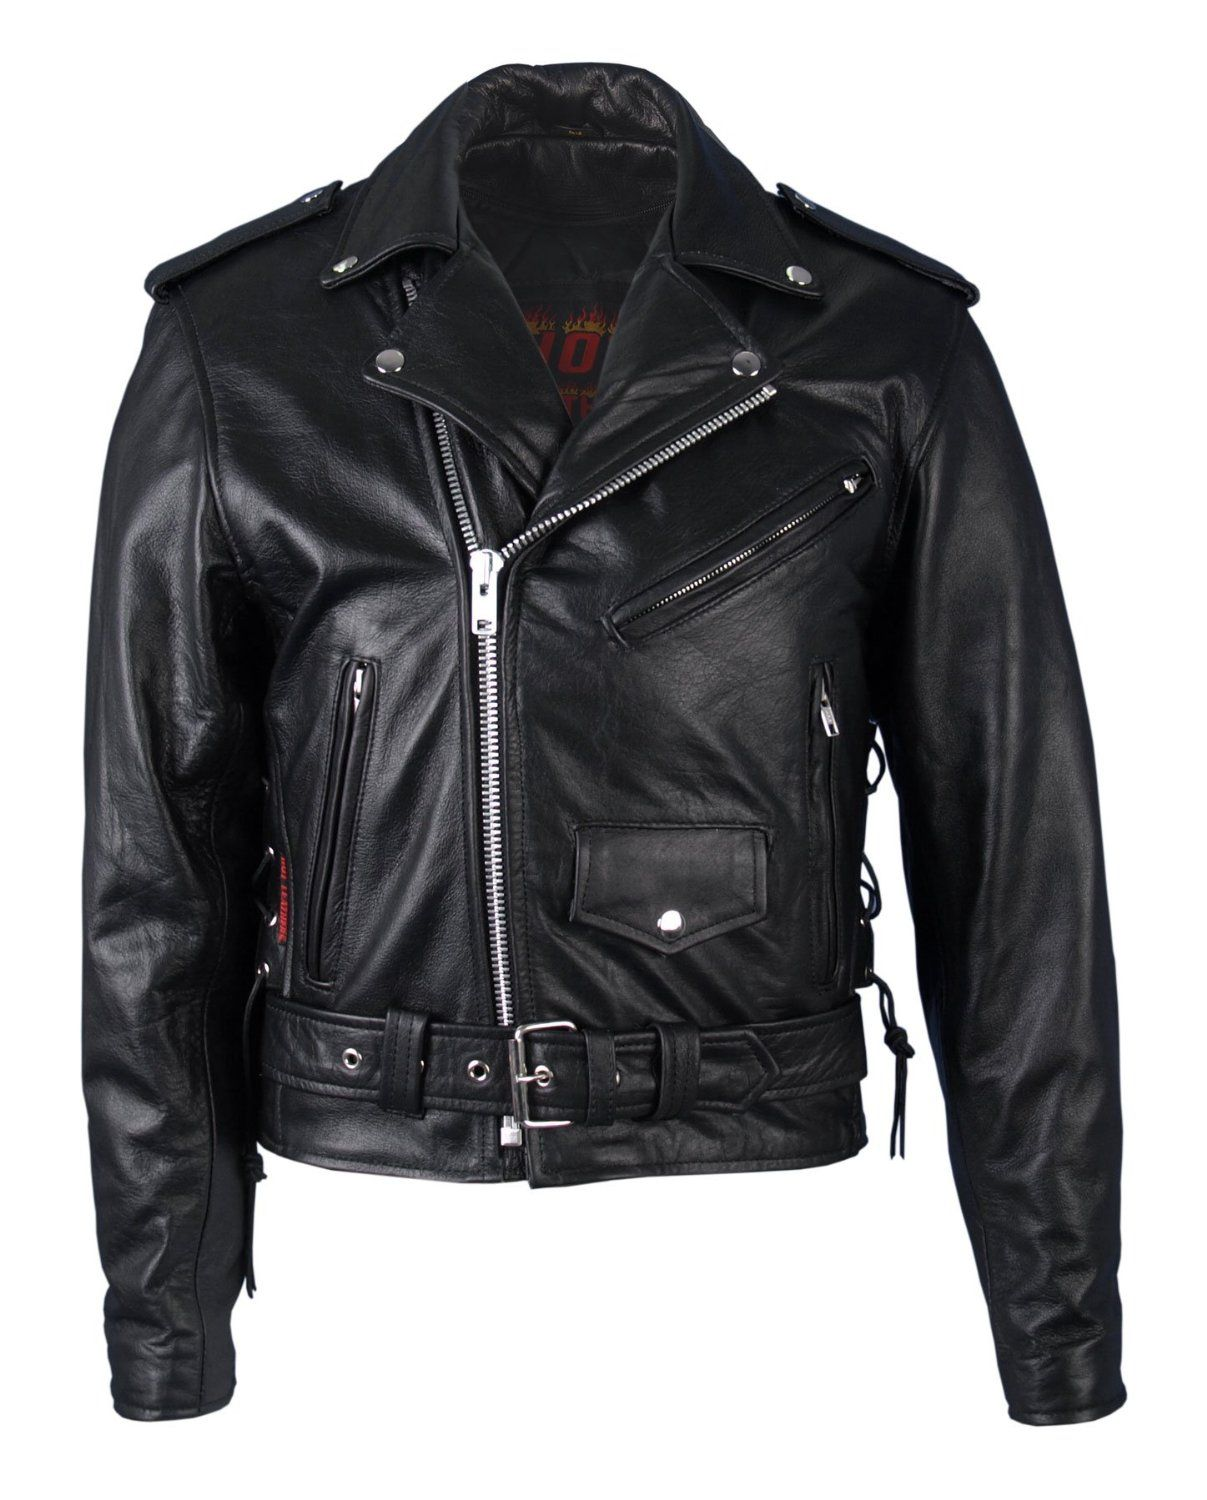 Amazon.com: Hot Leathers Classic Motorcycle Jacket with Zip Out ...